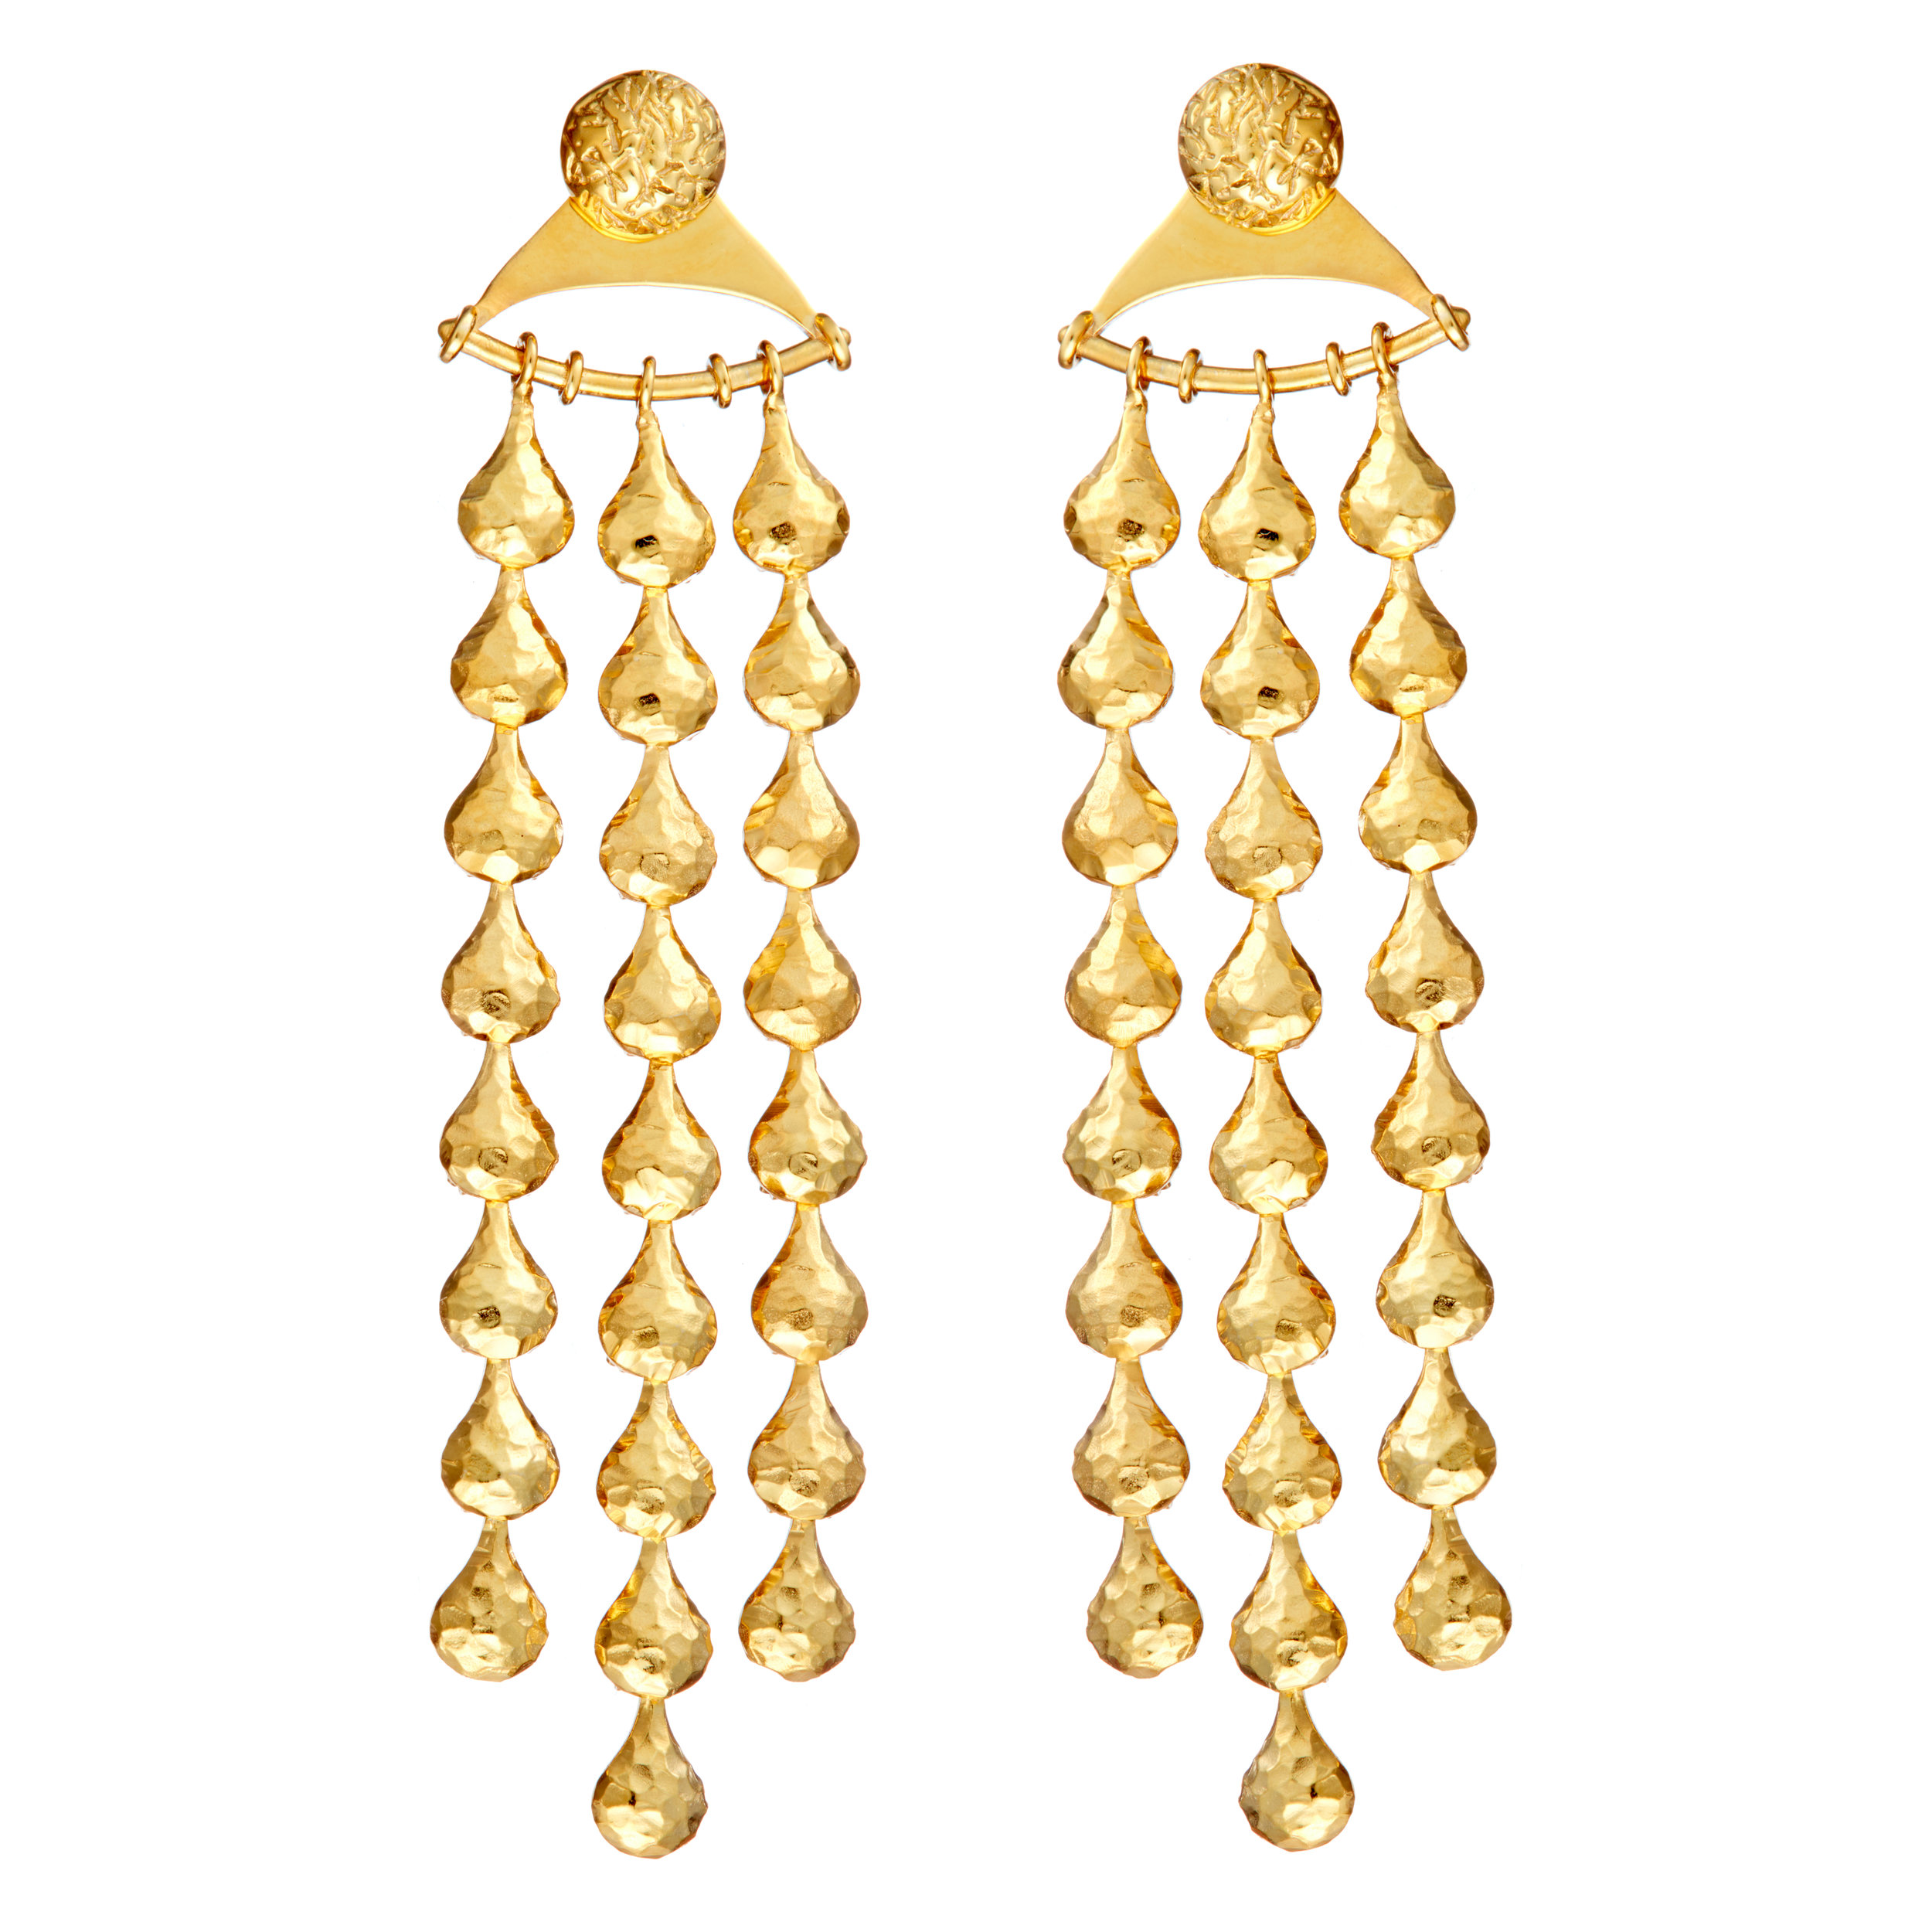 Belle Helene Drops Edition - Earrings